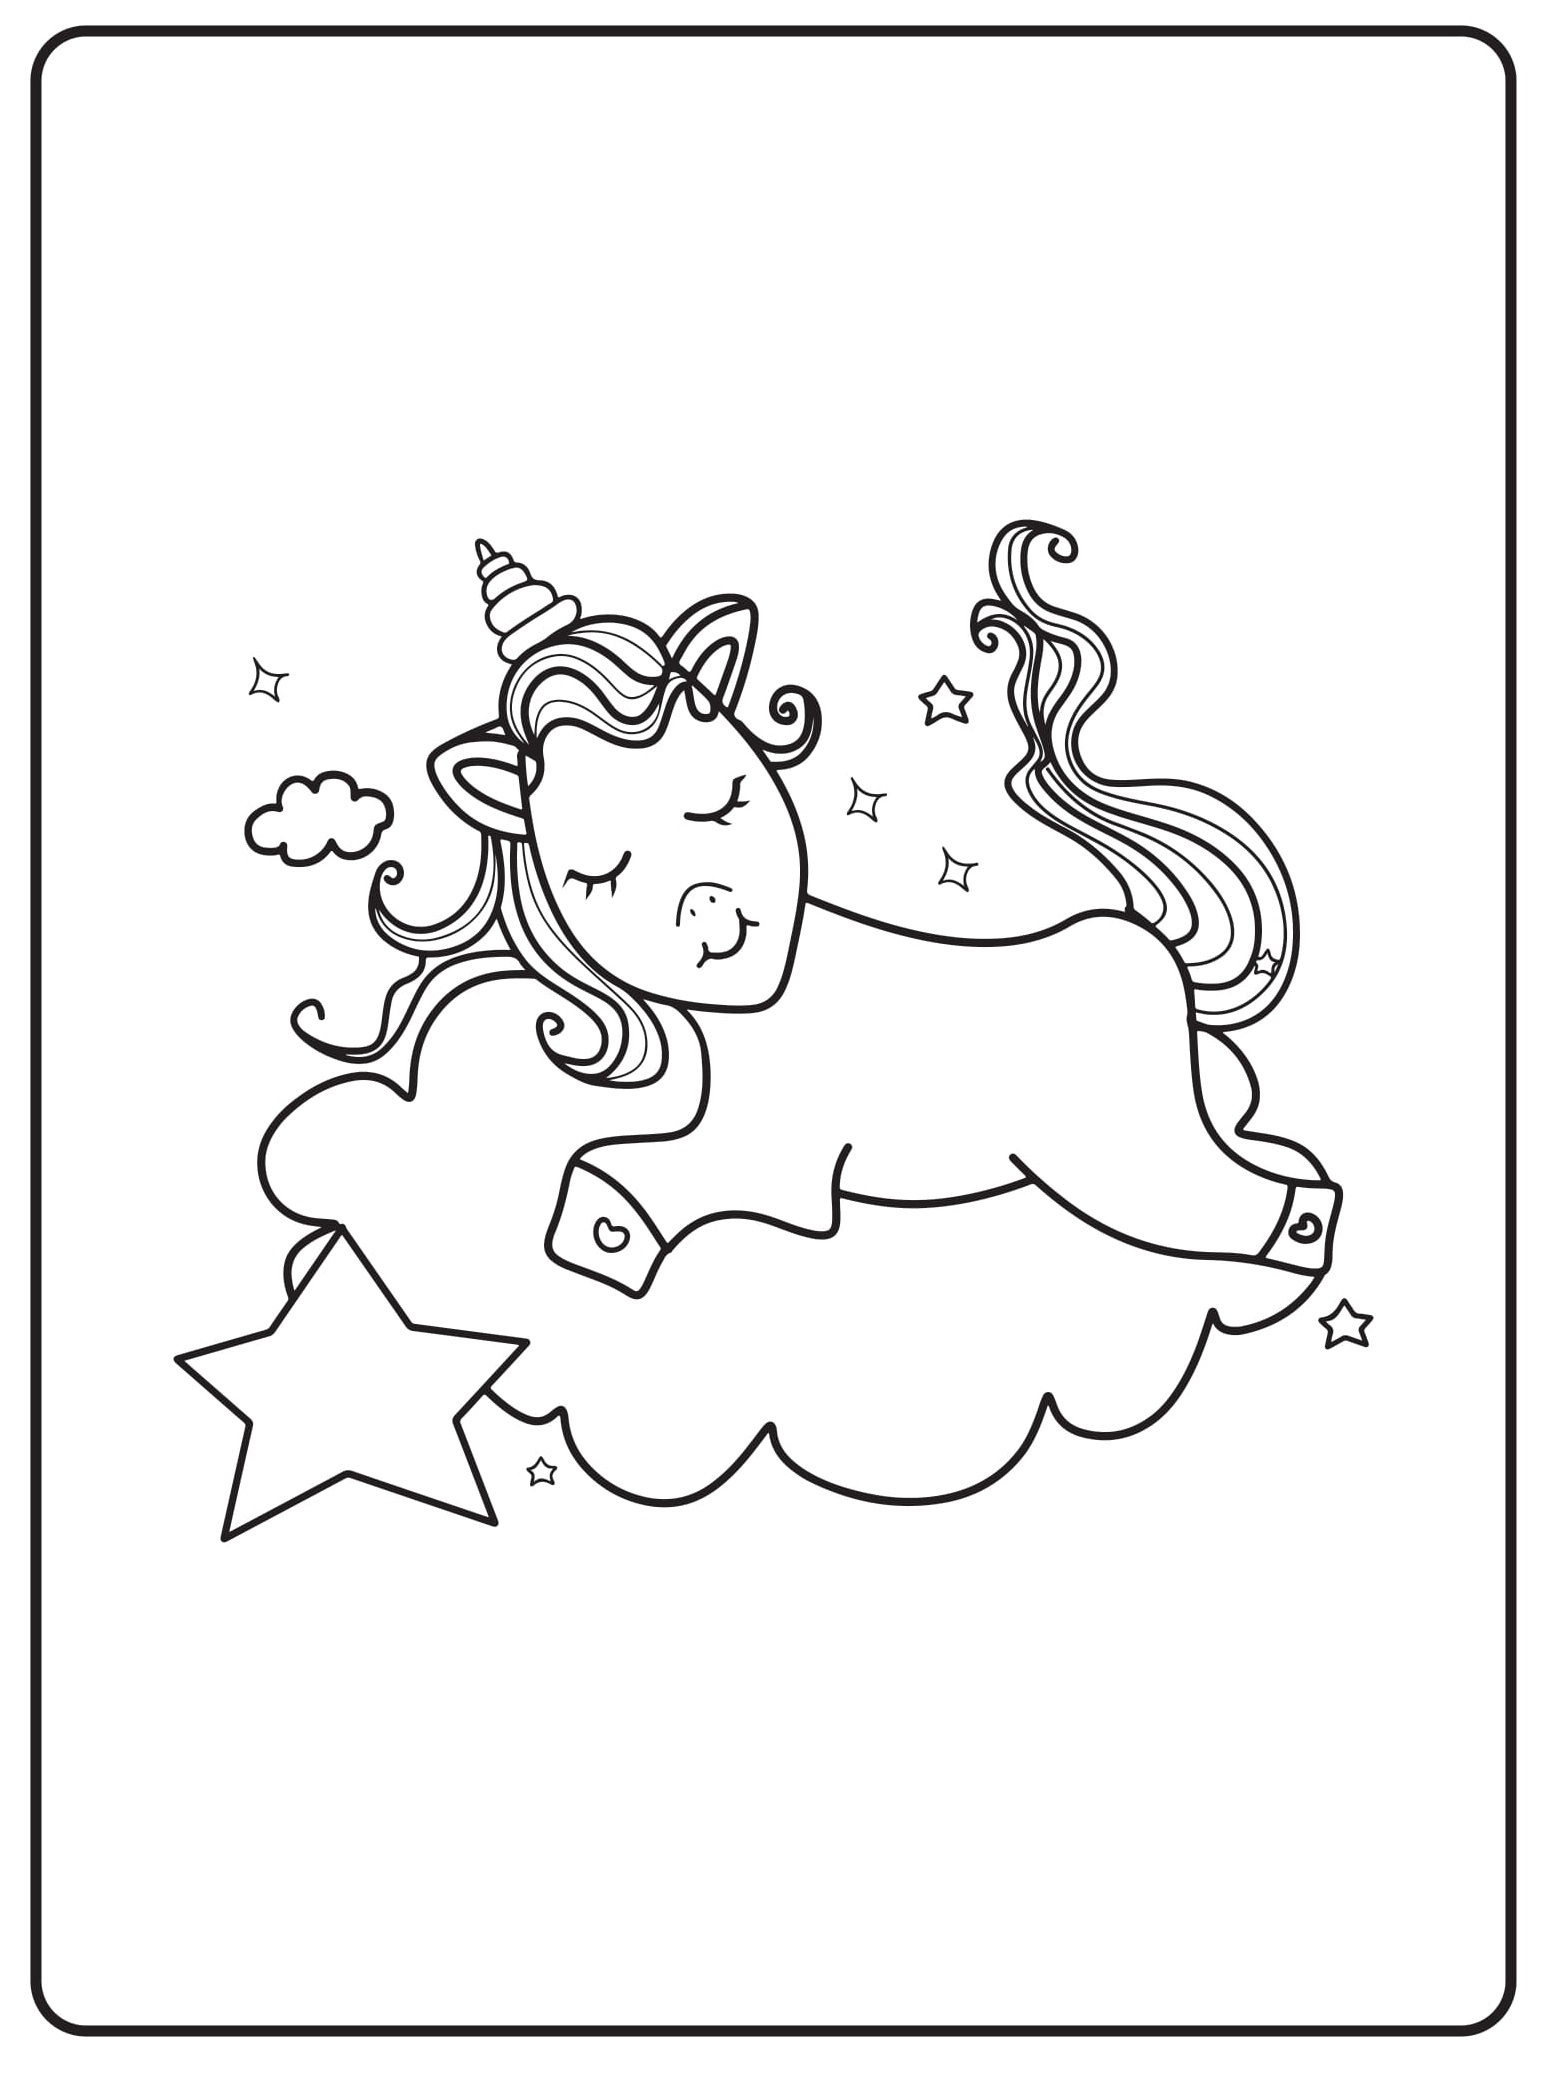 Unicorn Coloring Pages 19